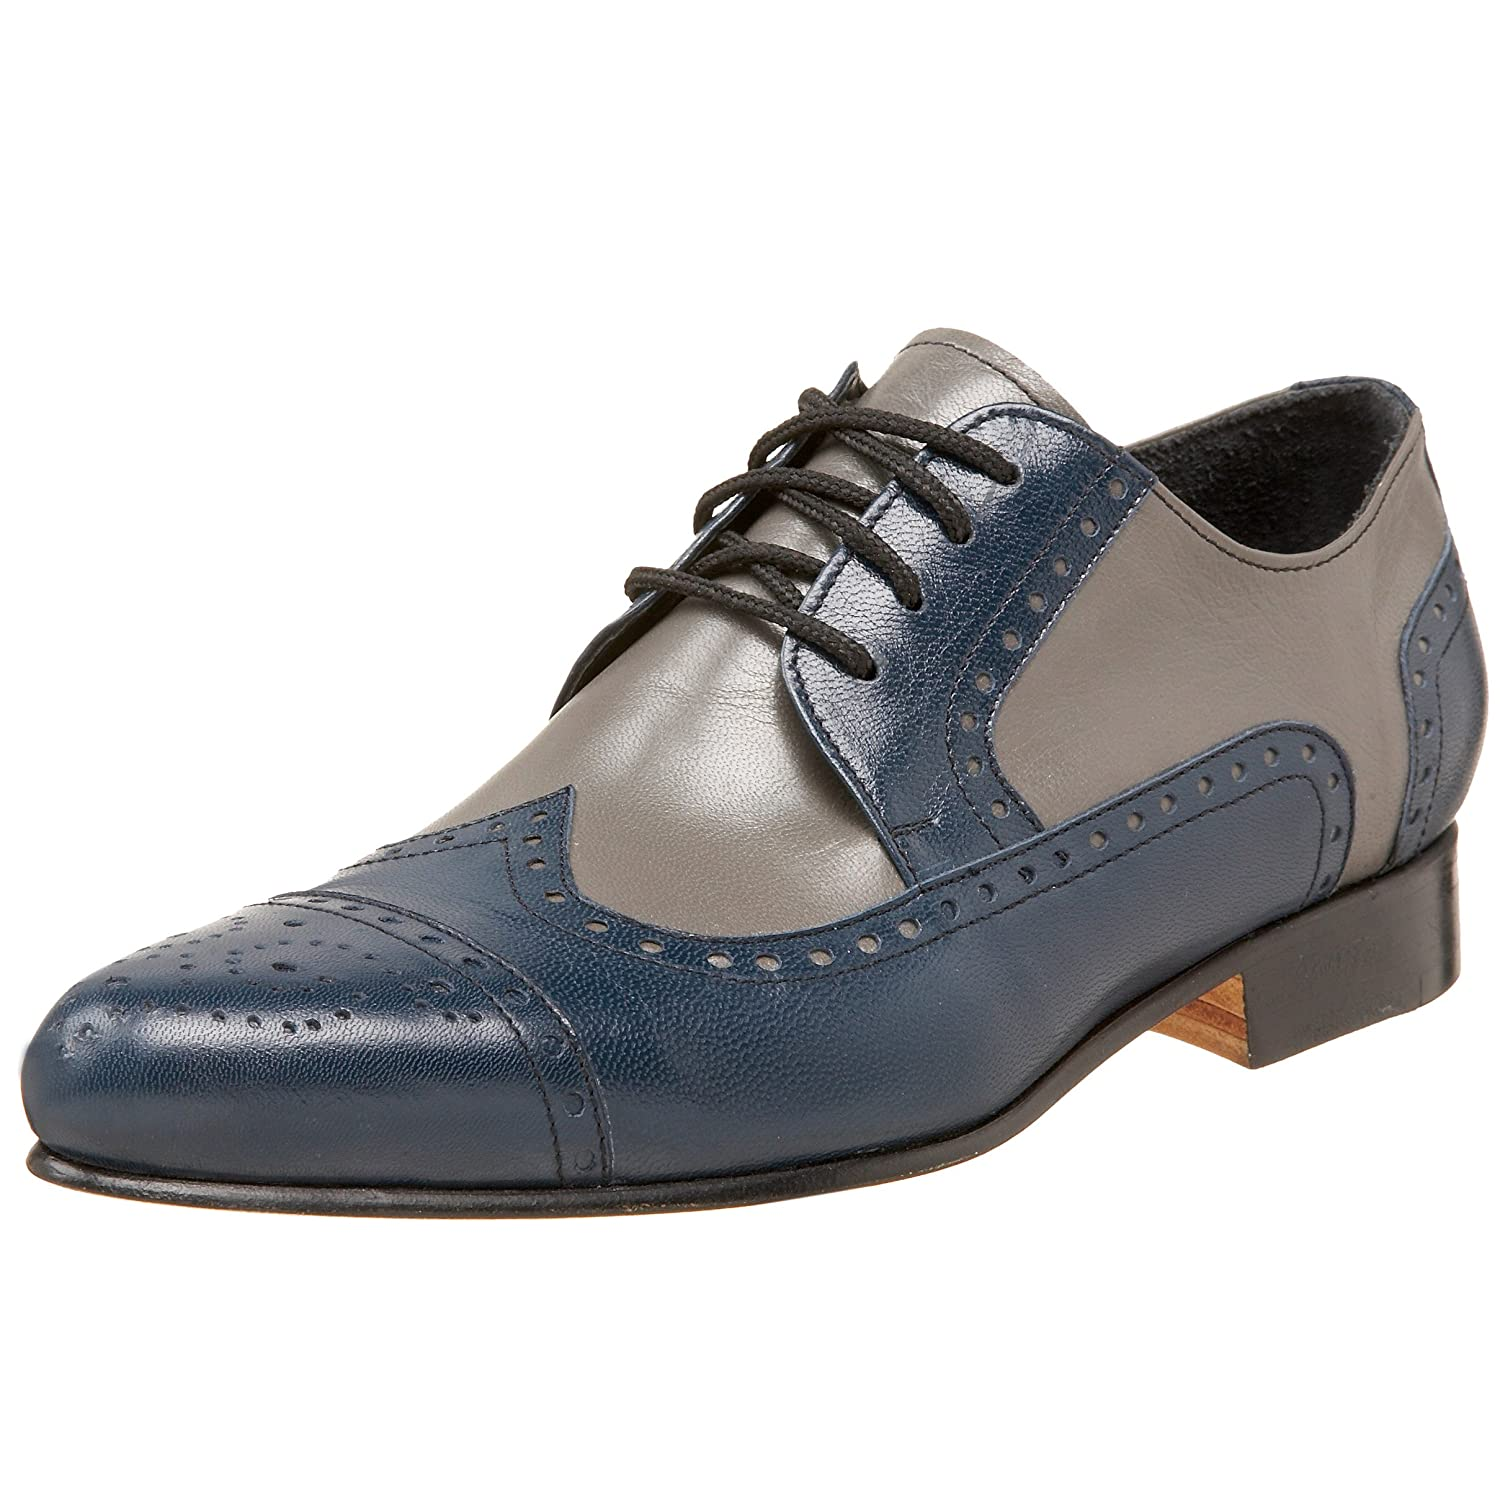 Esquivel - Women's Juliana Oxford from endless.com